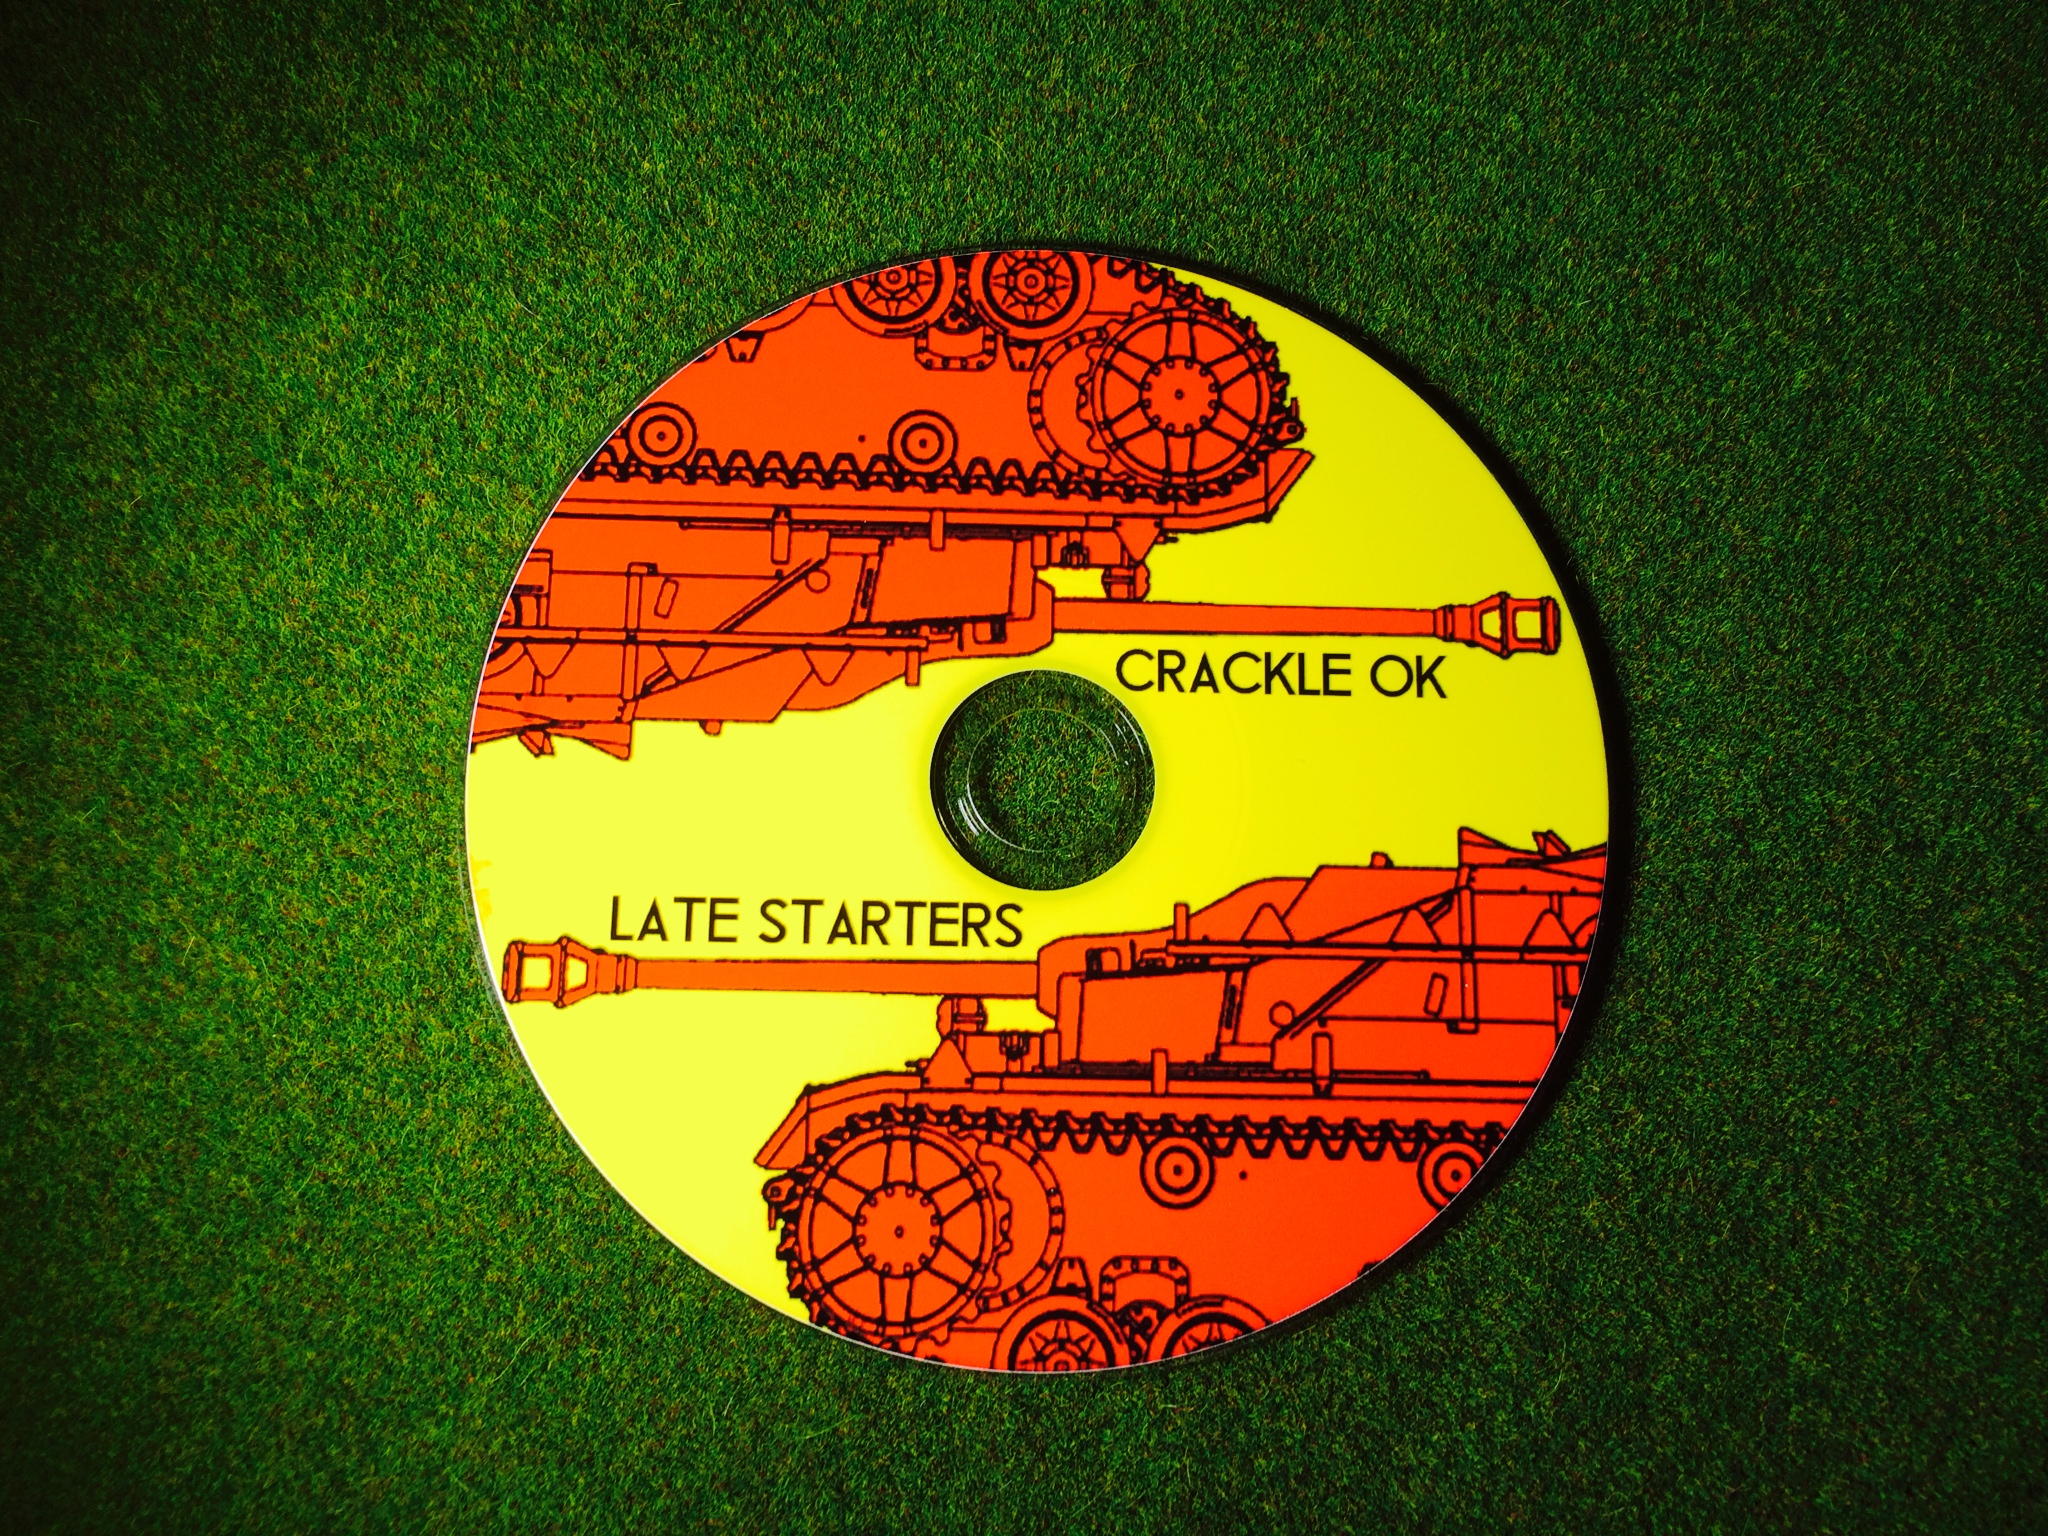 Late Starters - Crackle OK